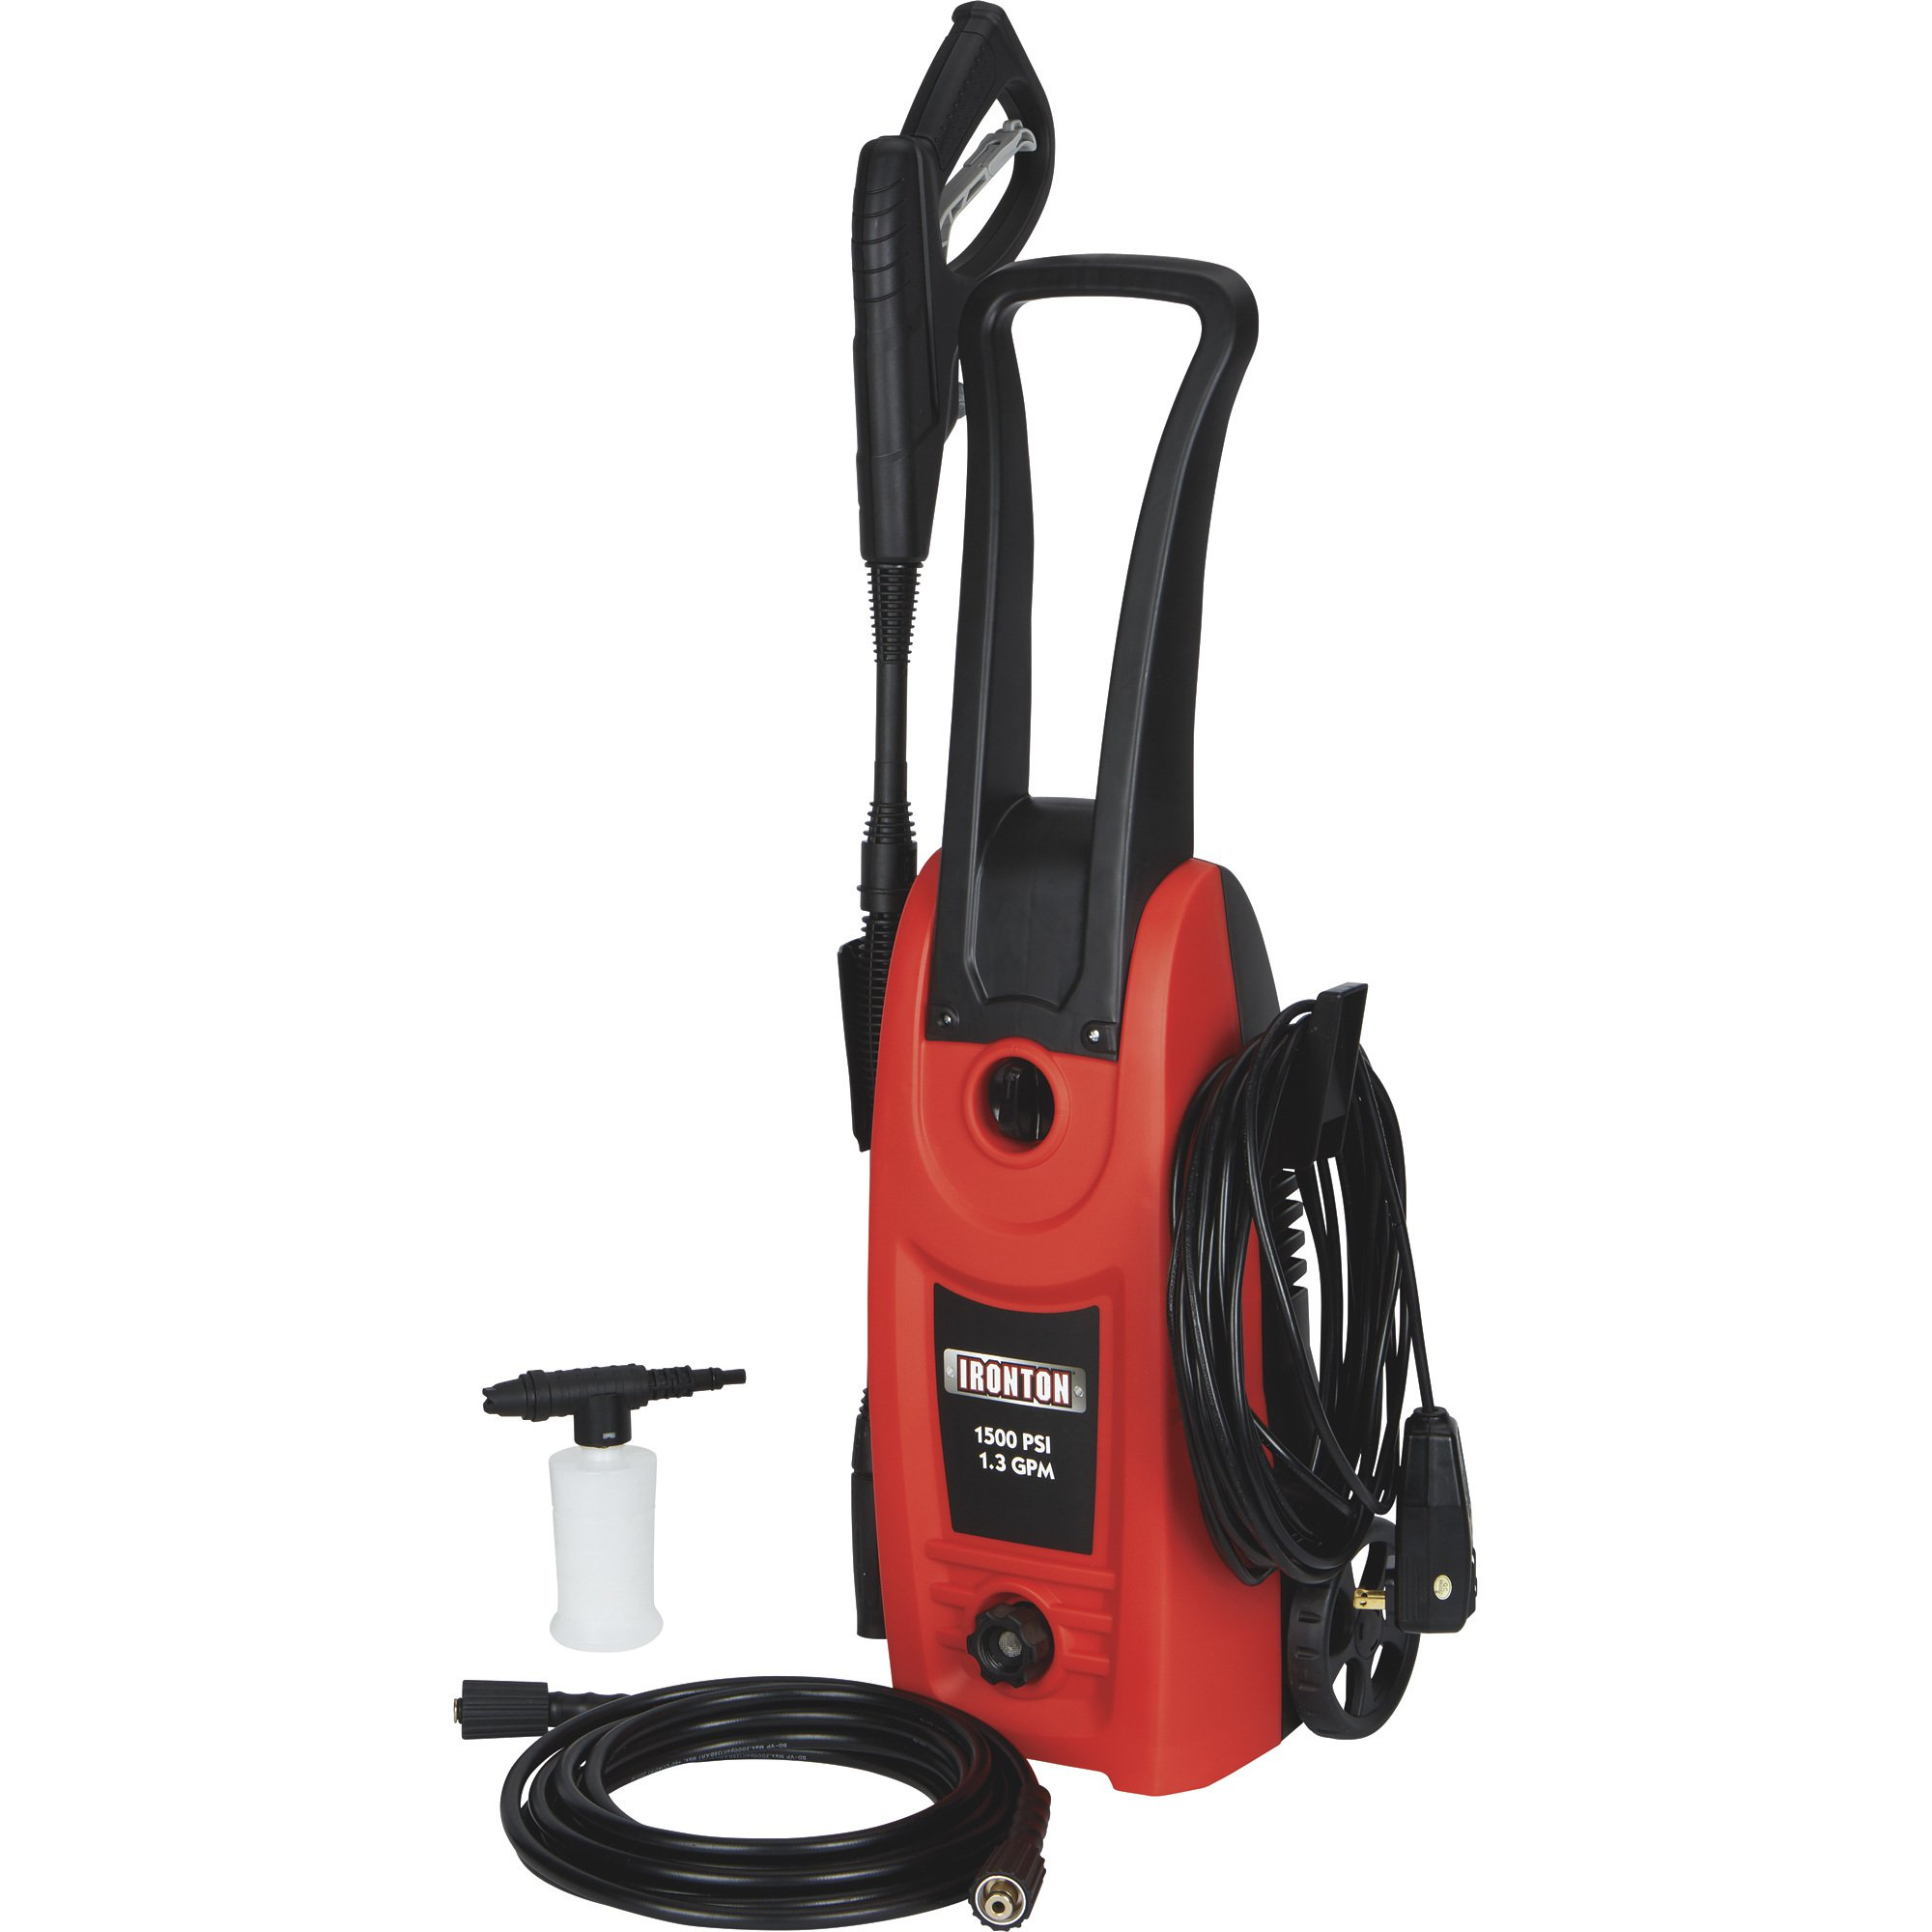 Ironton 157050 Electric Pressure Washer - 1.3 GPM, 1500 PSI